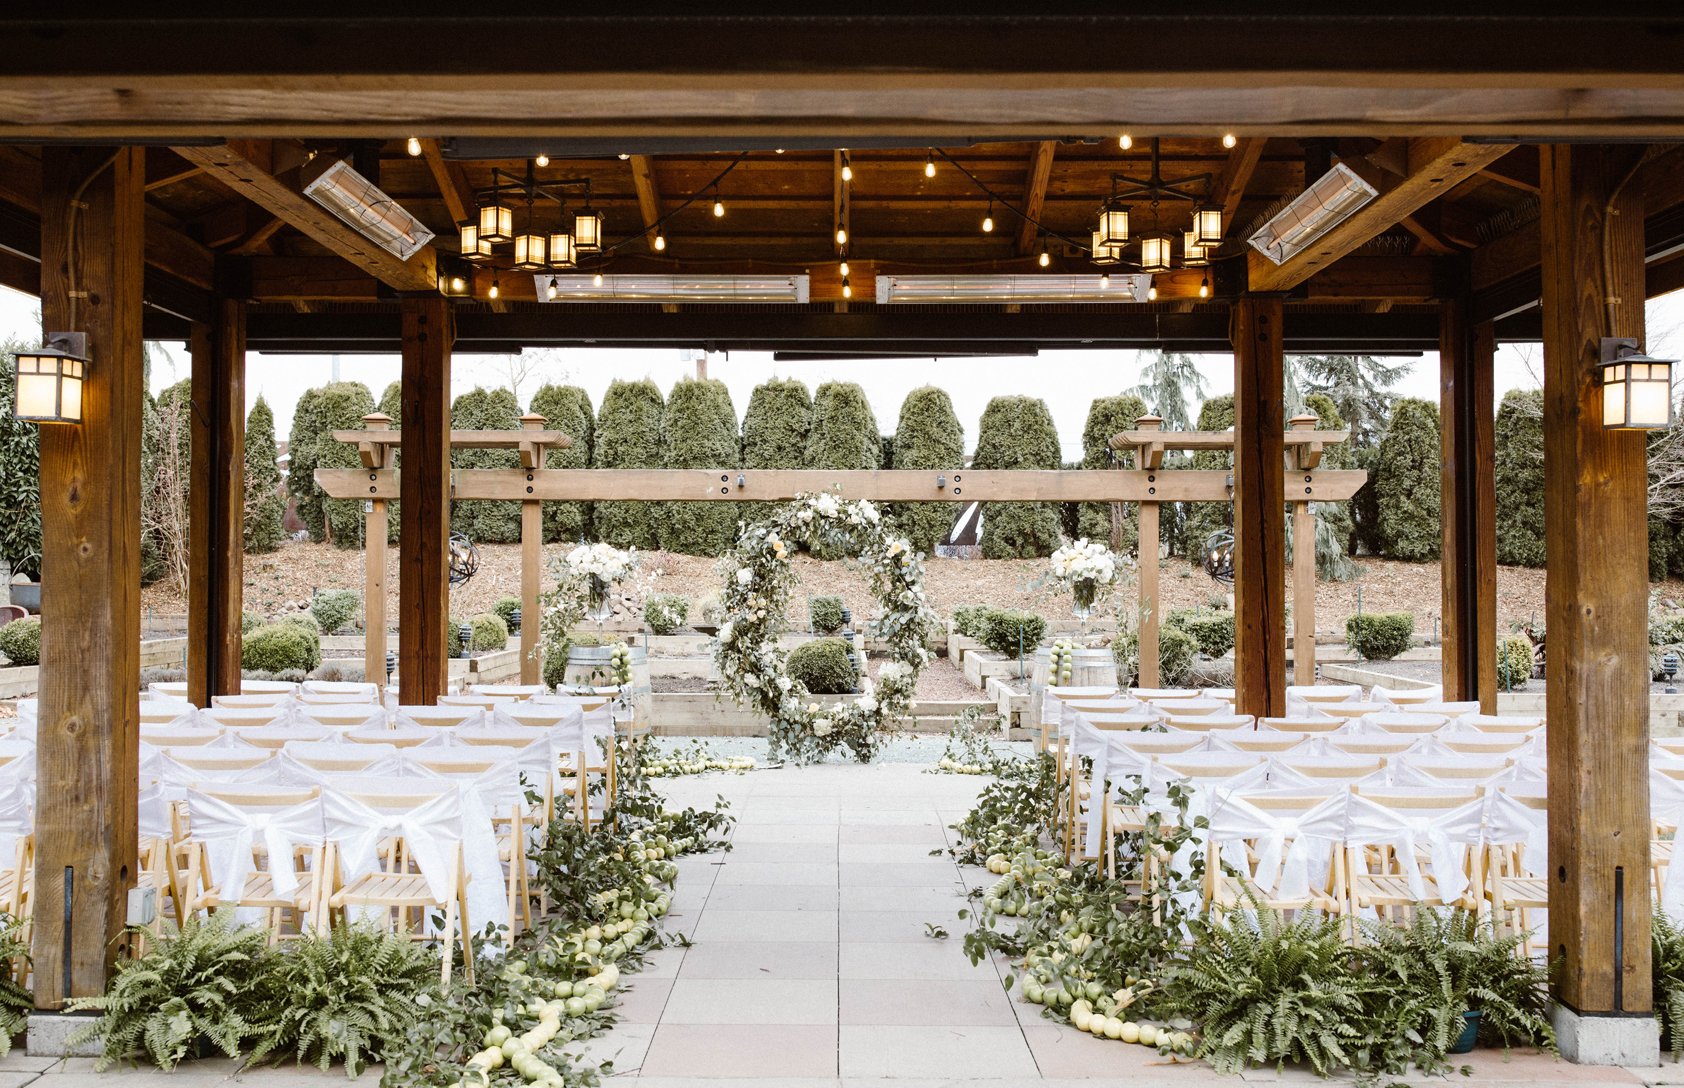 Willows+Lodge_Woodinville_2017_Weddings+In+Woodinville194.jpg